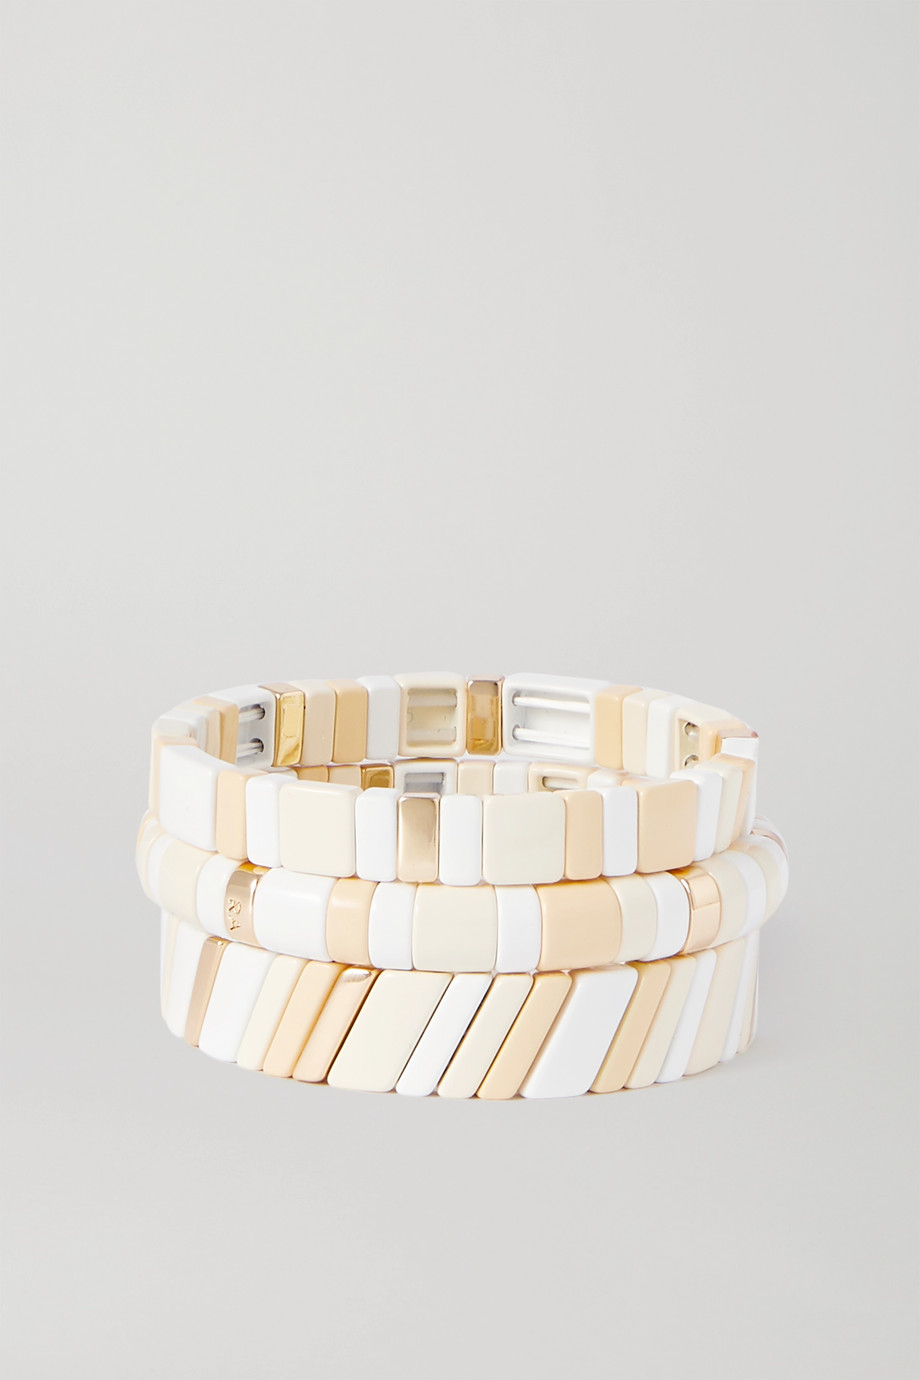 Roxanne Assoulin Triple Creme set of three enamel and gold-tone bracelets